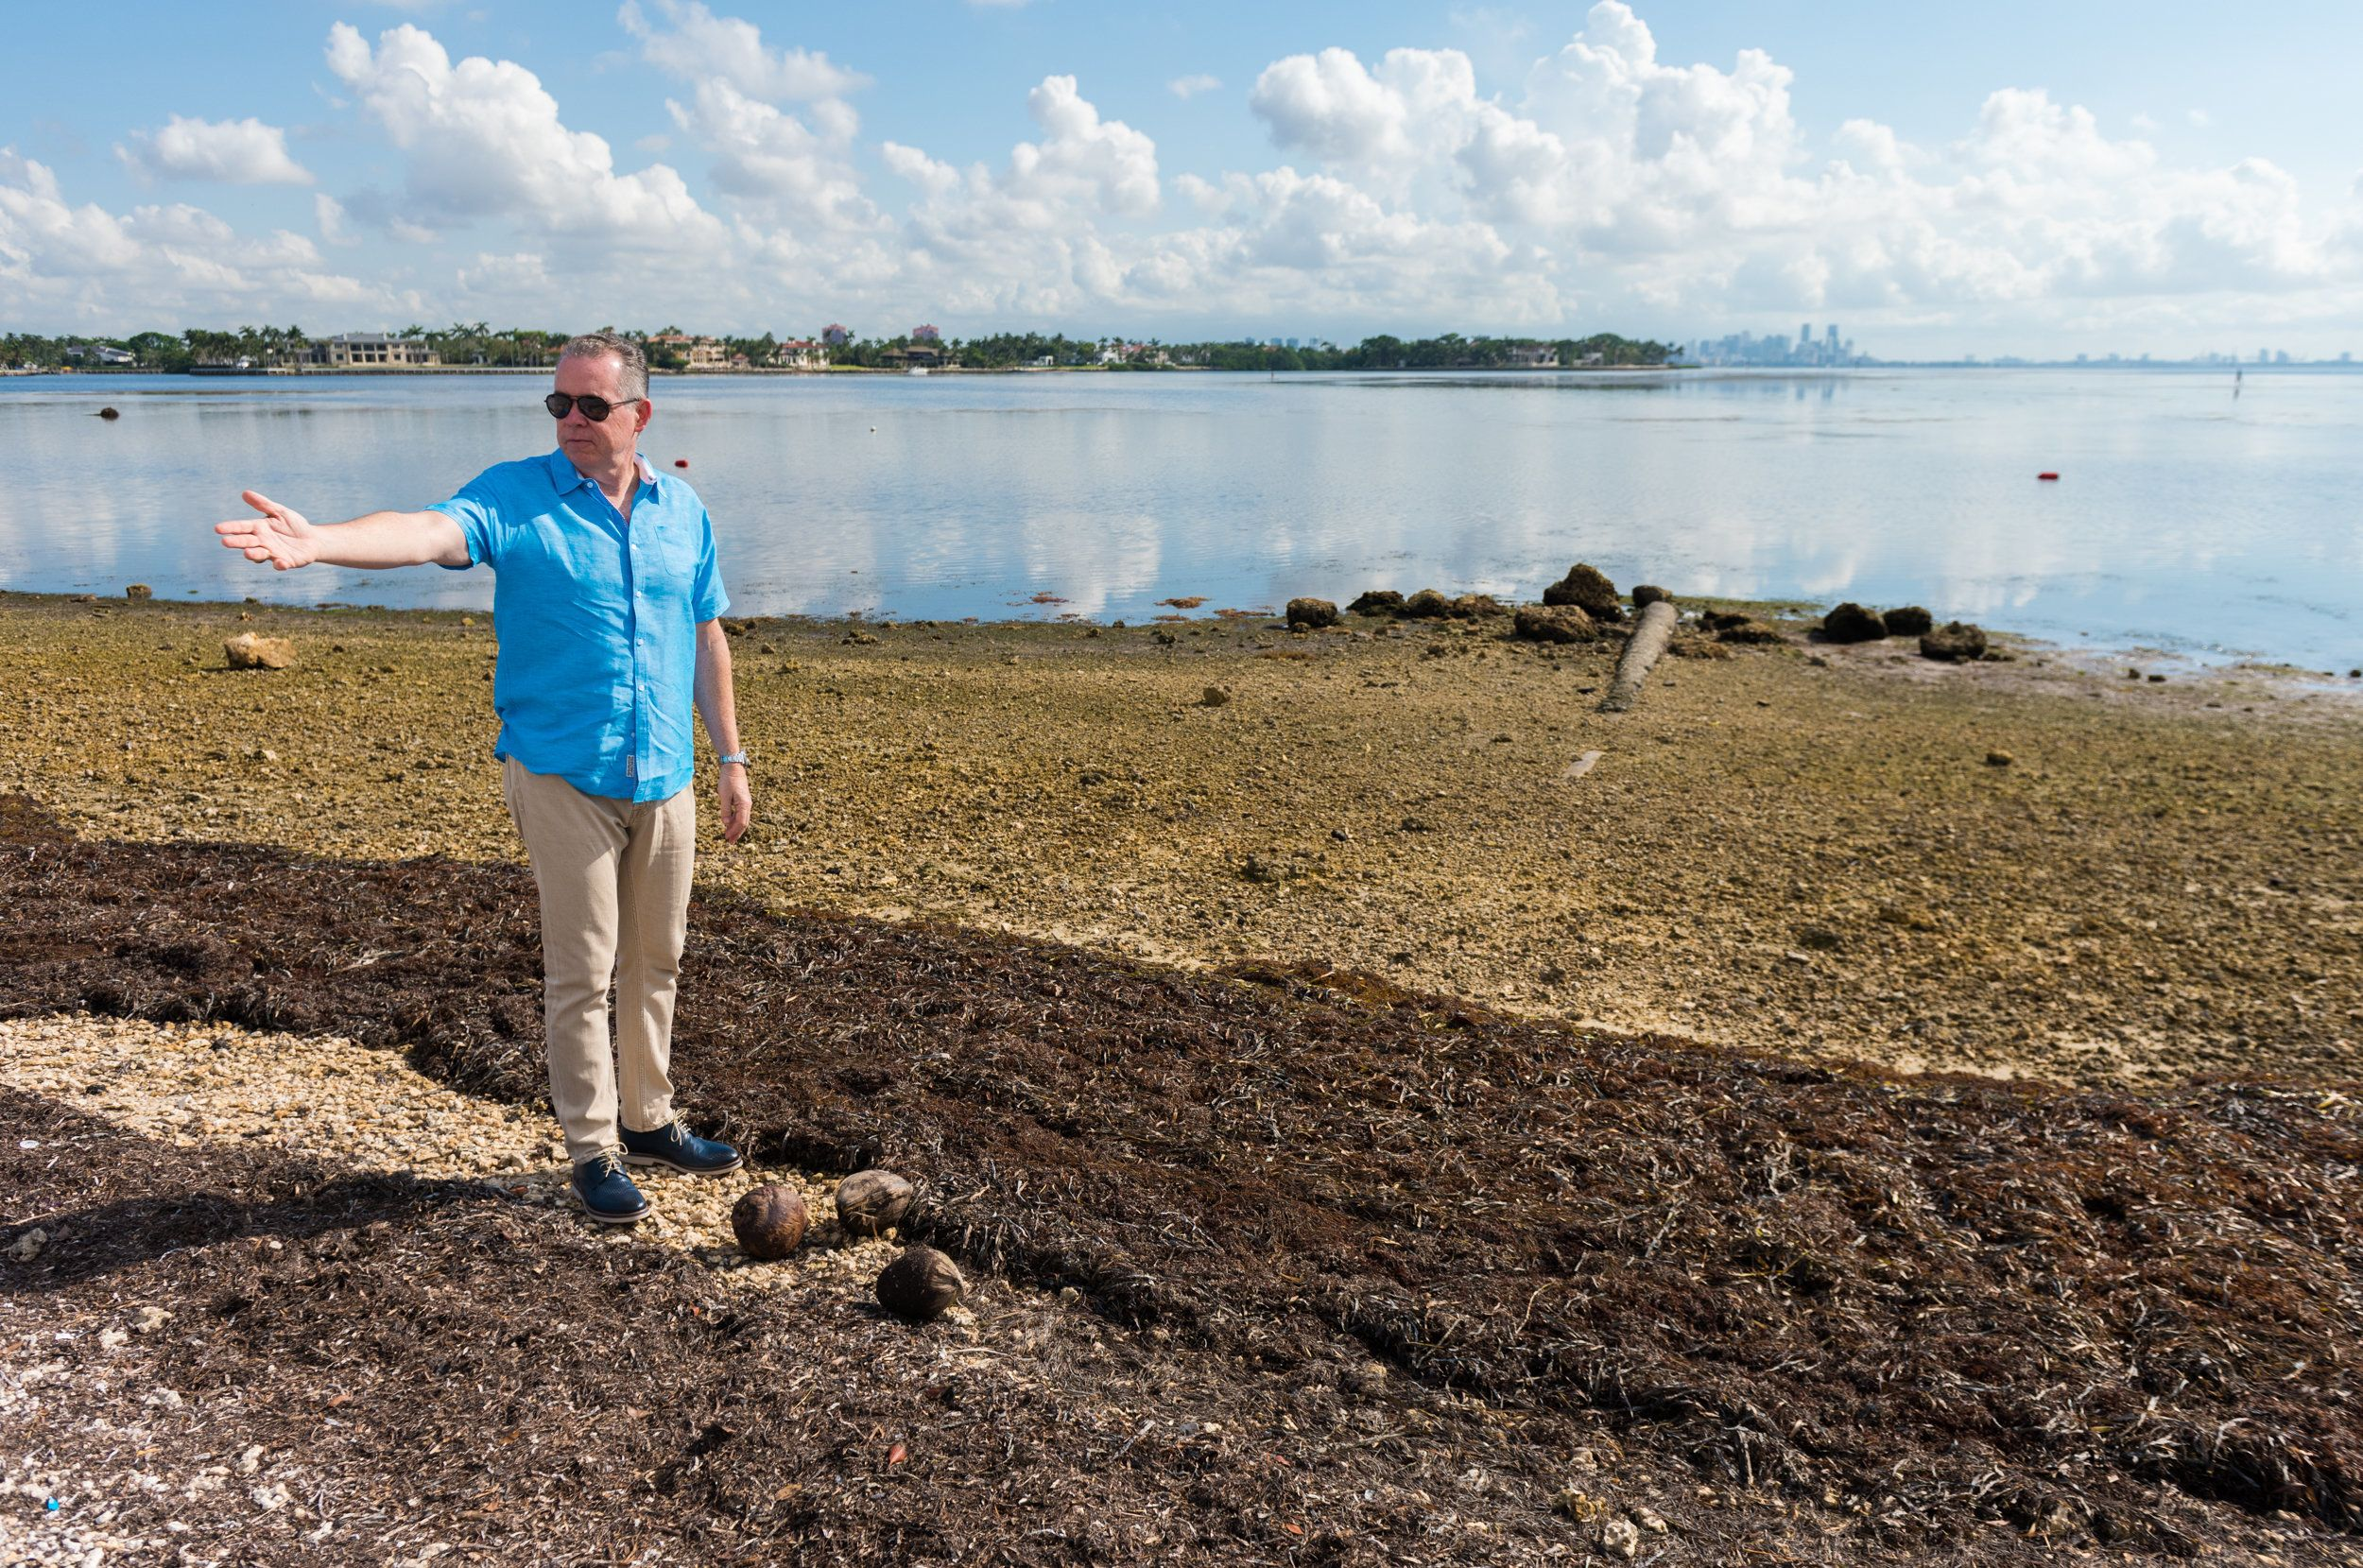 Morales  at Matheson Hammock Park, where signs of last year's flooding from Hurricane Irma remain.